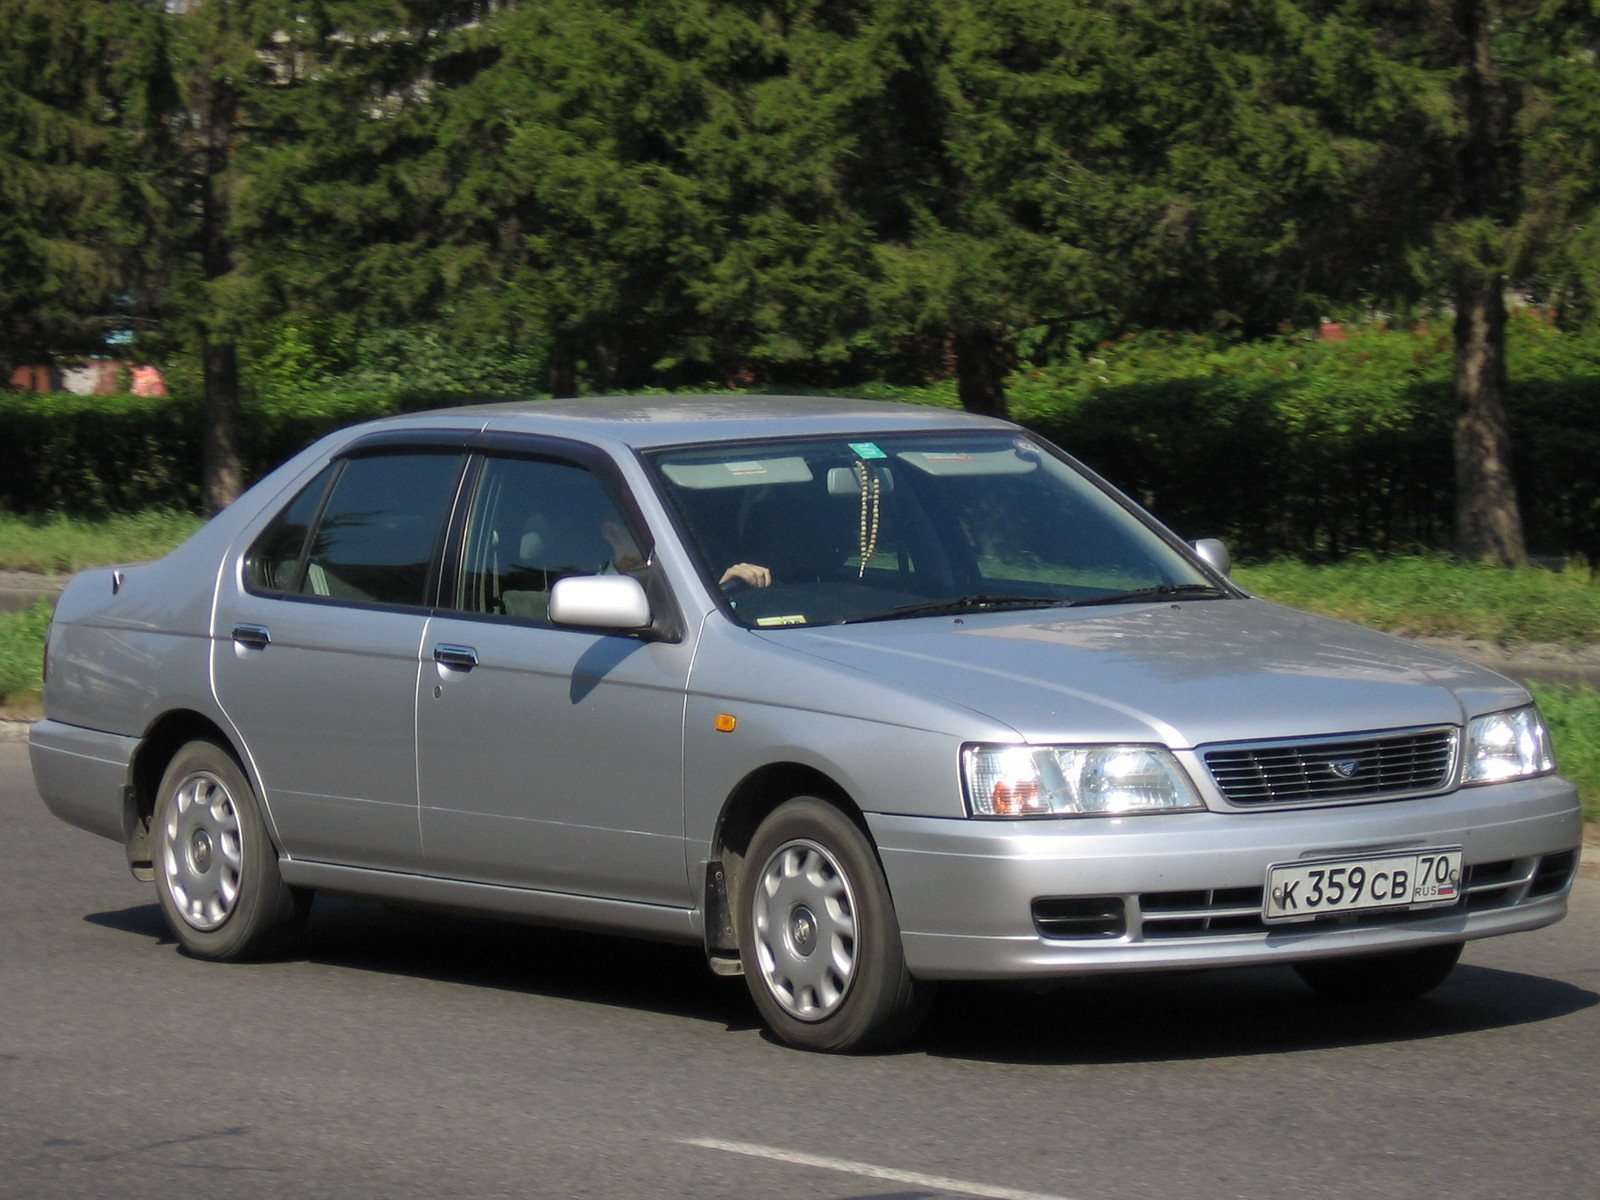 Nissan bluebird photo - 3